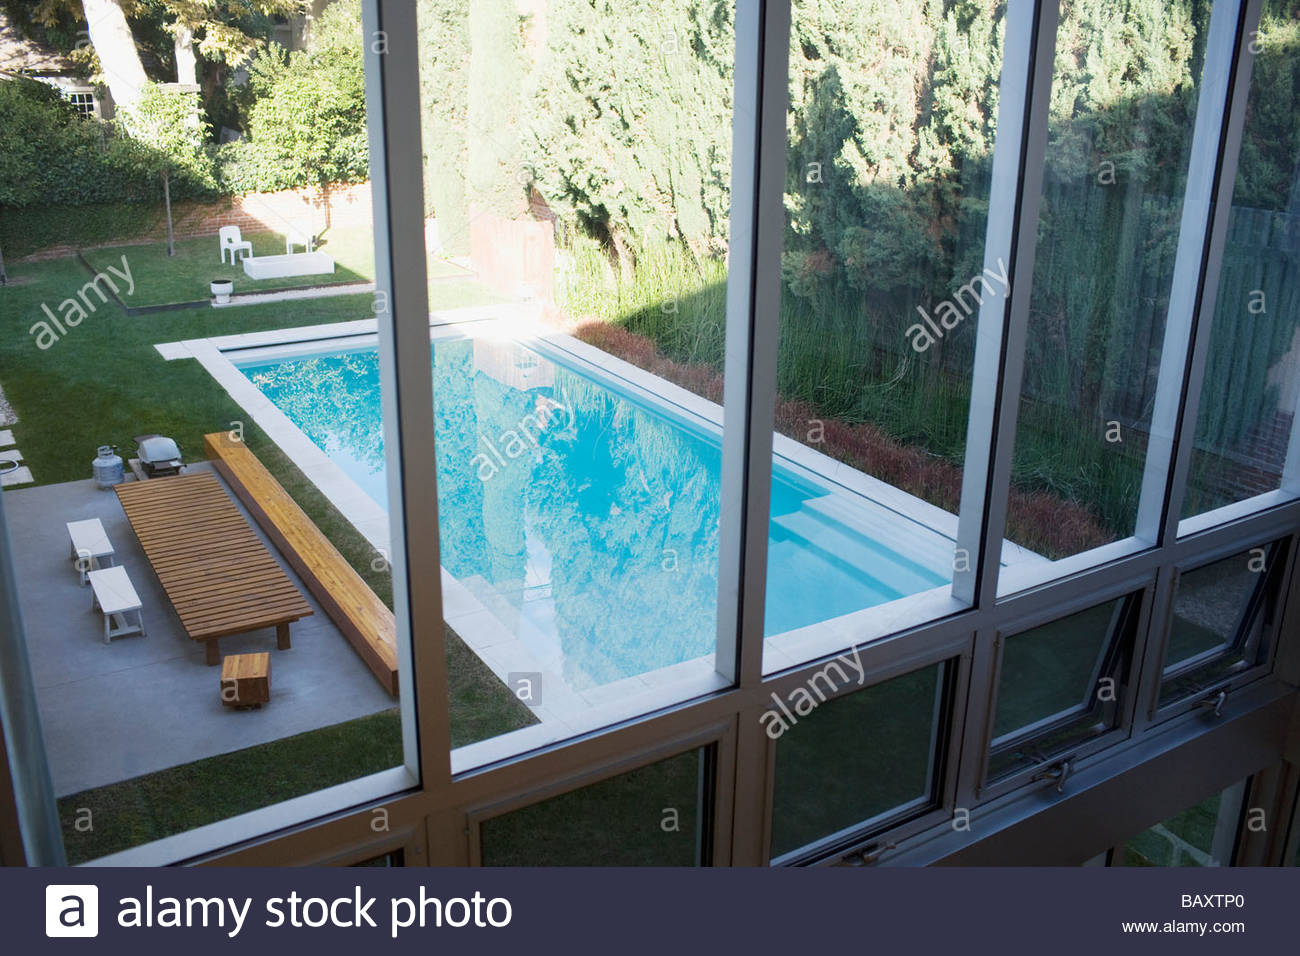 Exterior of modern house, swimming pool and patio - Stock Image